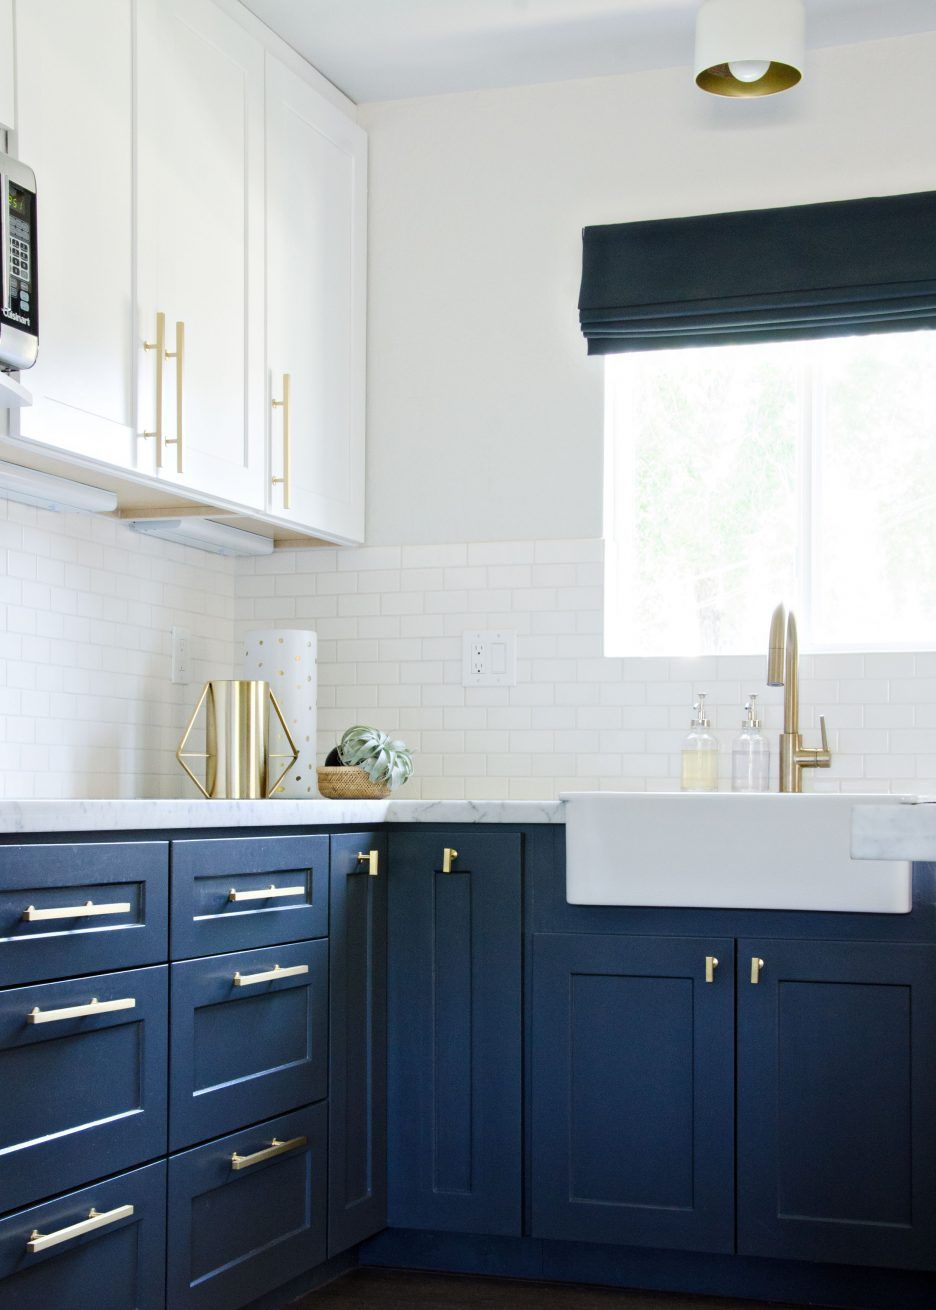 Fresh Design Blue Kitchen Cabinets Ikea Kitchen Kitchen Paint Colors Small Kitchen Cabinets Modern Kitchen Remodel Navy Kitchen Cabinets Blue Kitchen Cupboards